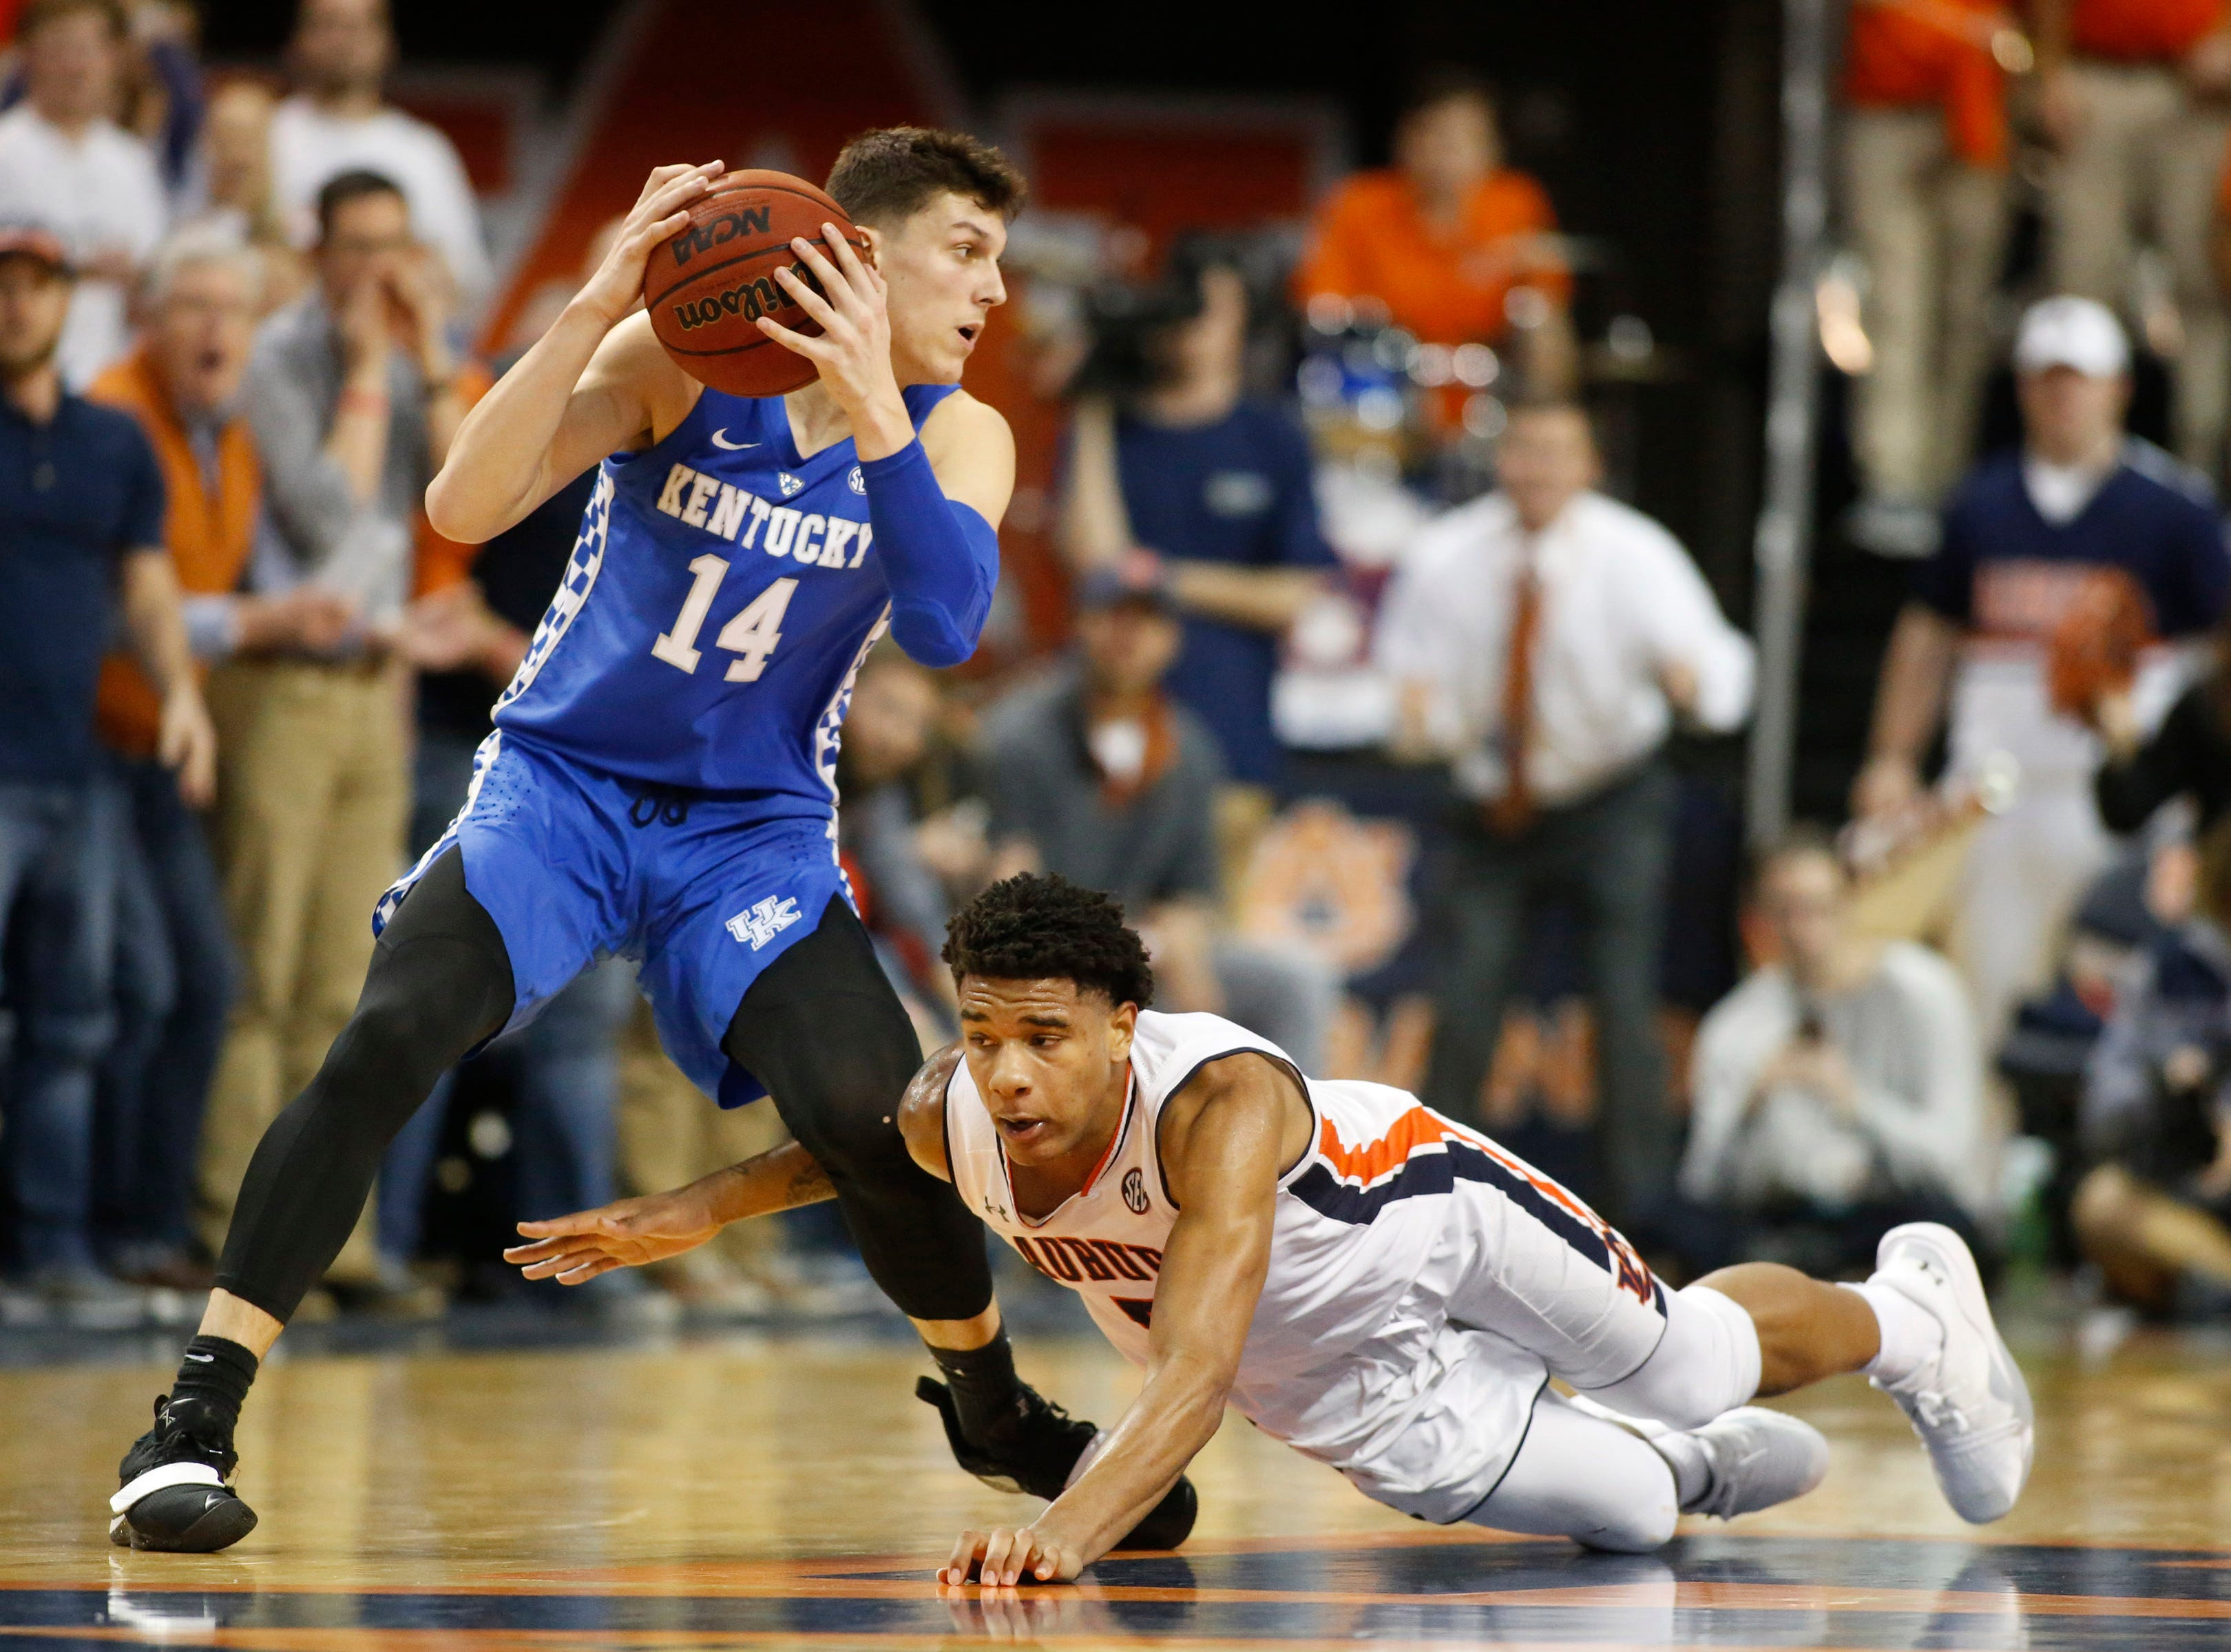 Jan 19, 2019; Auburn, AL, USA;  Kentucky Wildcats guard Tyler Herrd (14) comes up with the ball over Auburn Tigers forward Chuma Okeke (5) during the second half at Auburn Arena. Mandatory Credit: John Reed-USA TODAY Sports